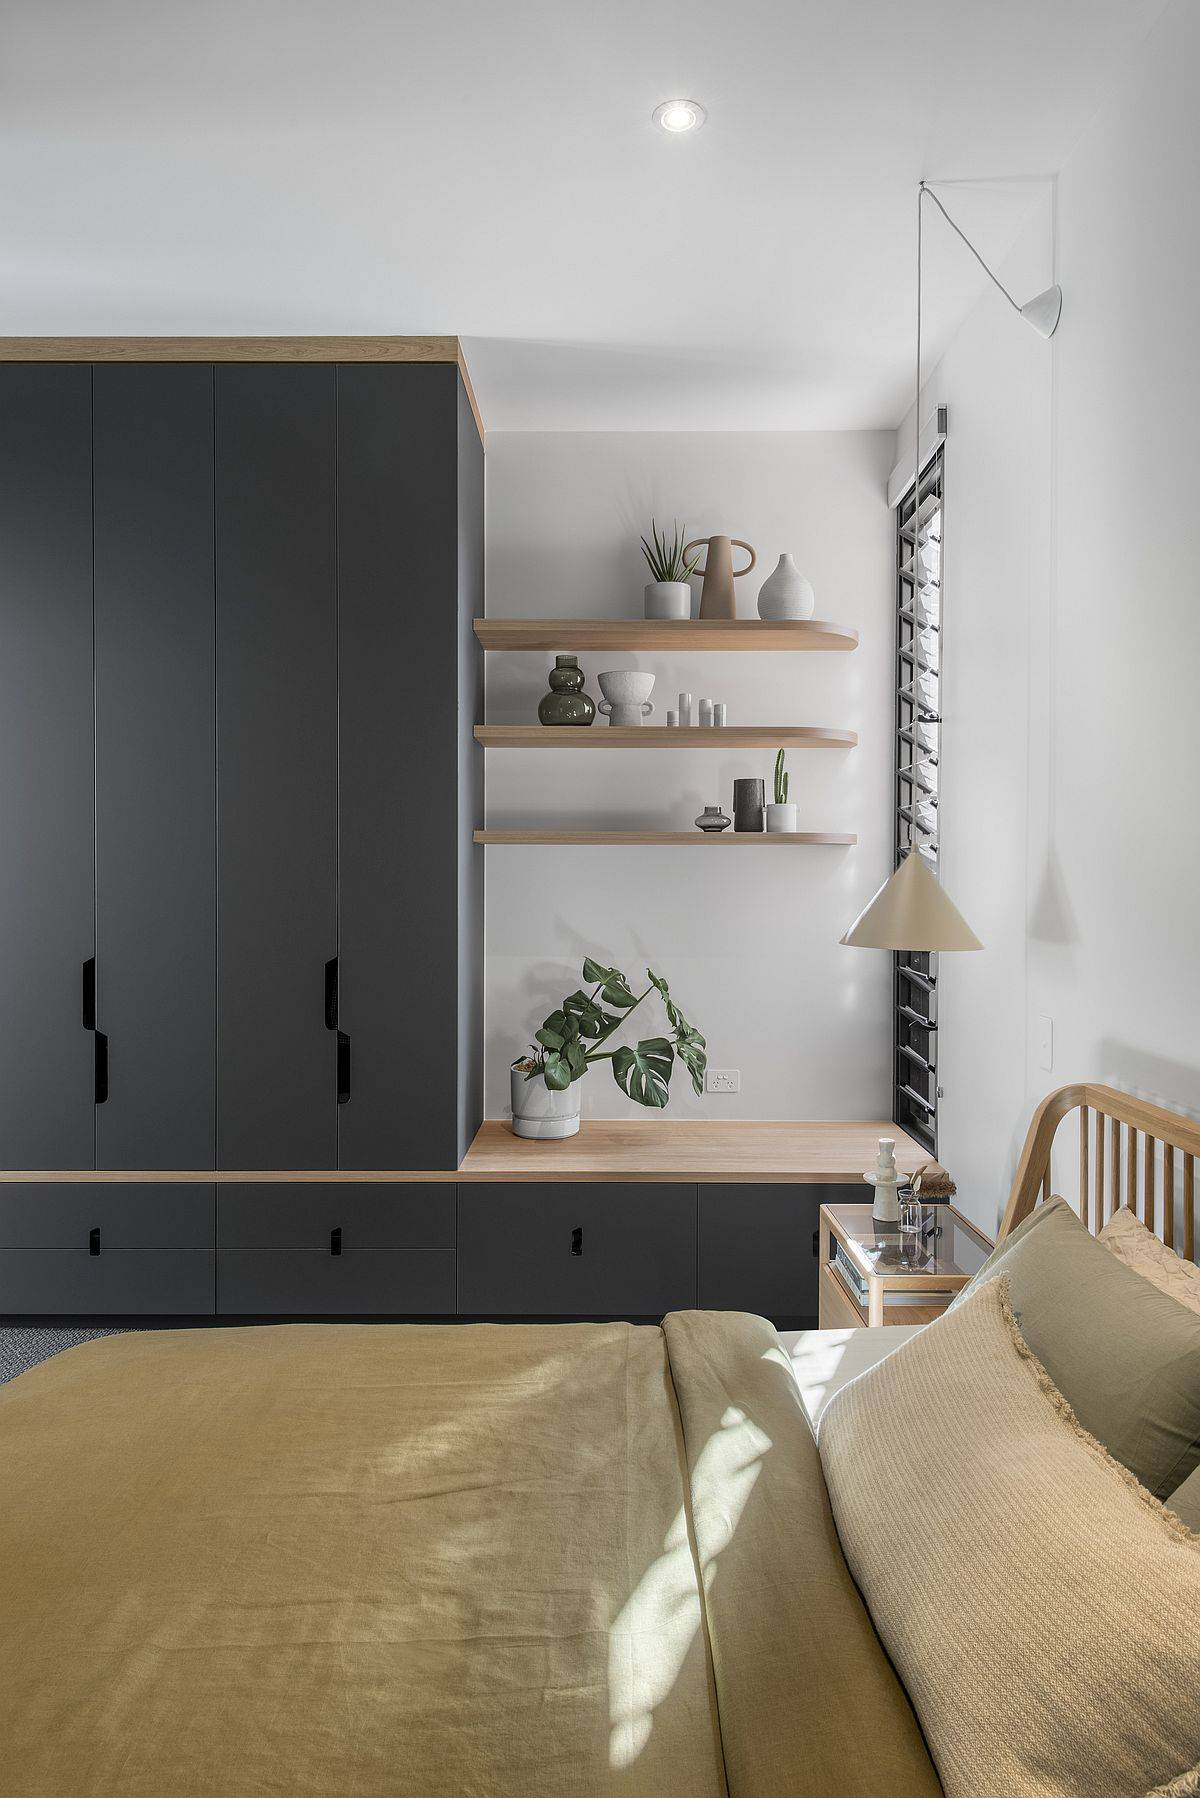 Small and space-savvy modern bedroom in white with dark gray cabinets